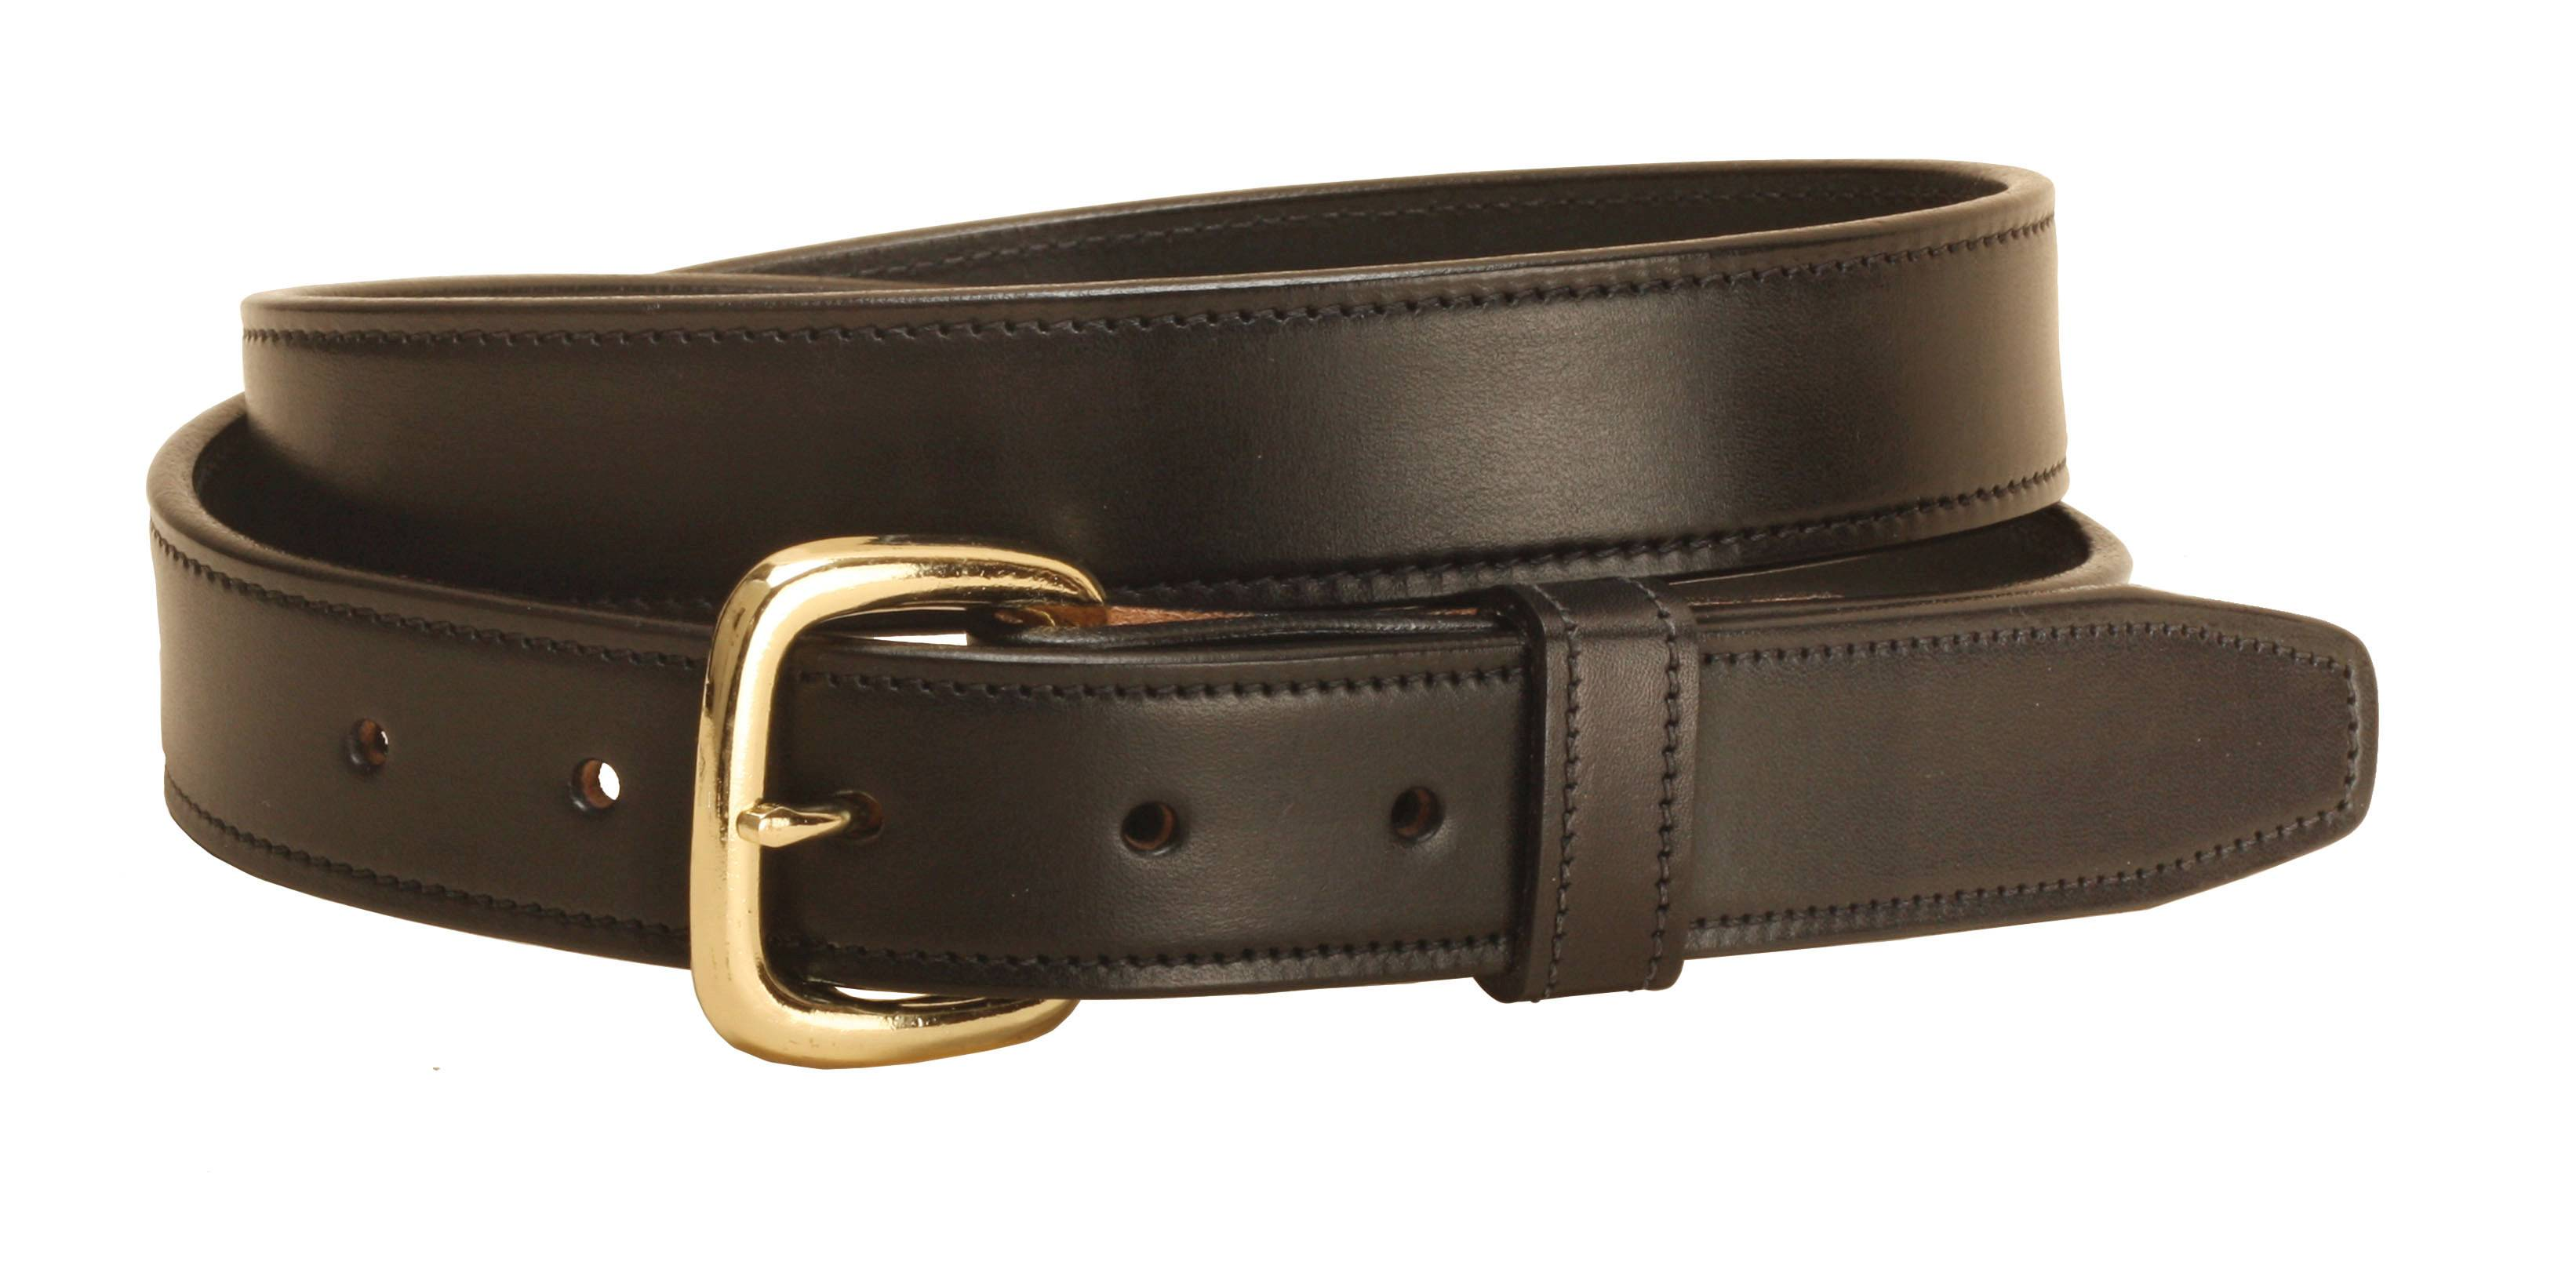 Tory Leather Stitched Leather Belt